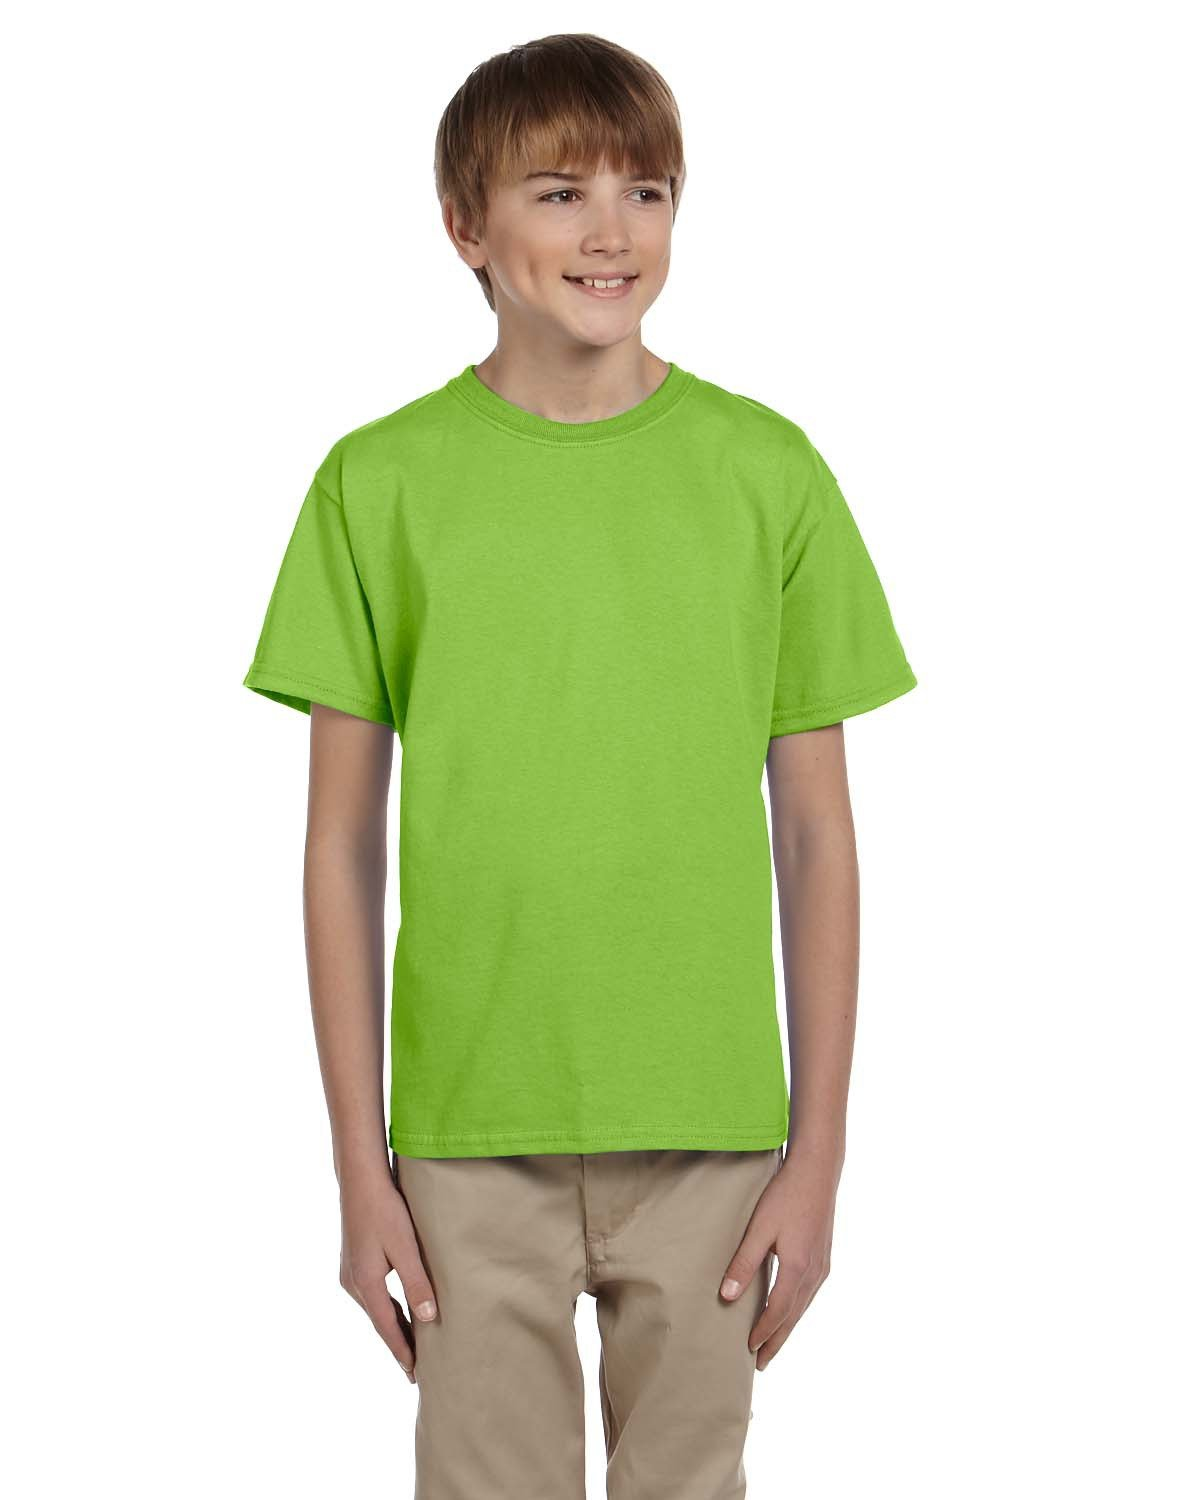 Hanes Youth 50/50 T-Shirt LIME